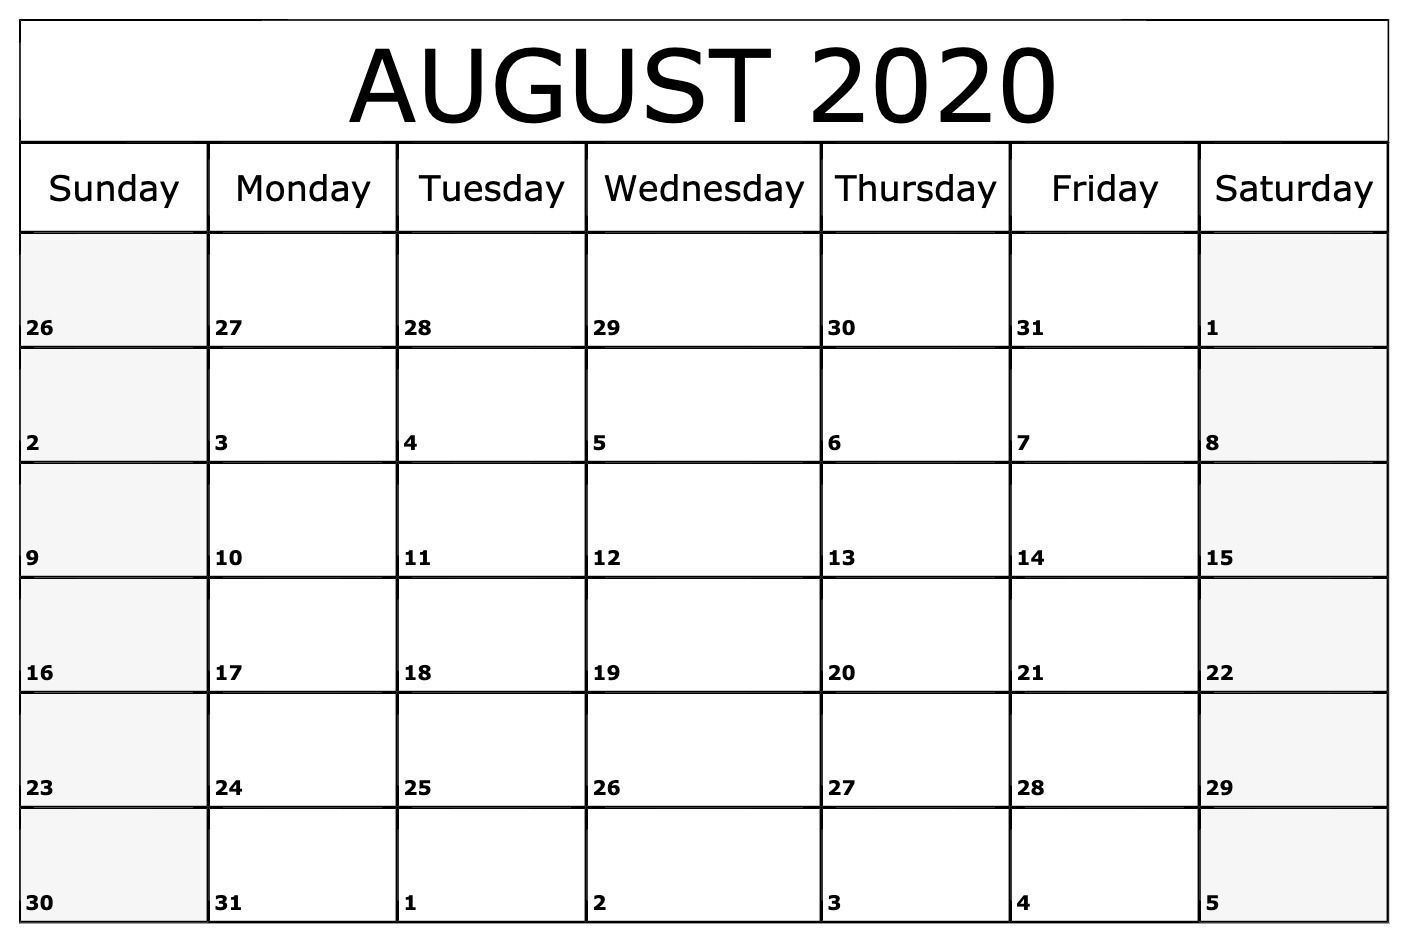 August 2020 Calendar Wallpapers   Top August 2020 Calendar 1406x929